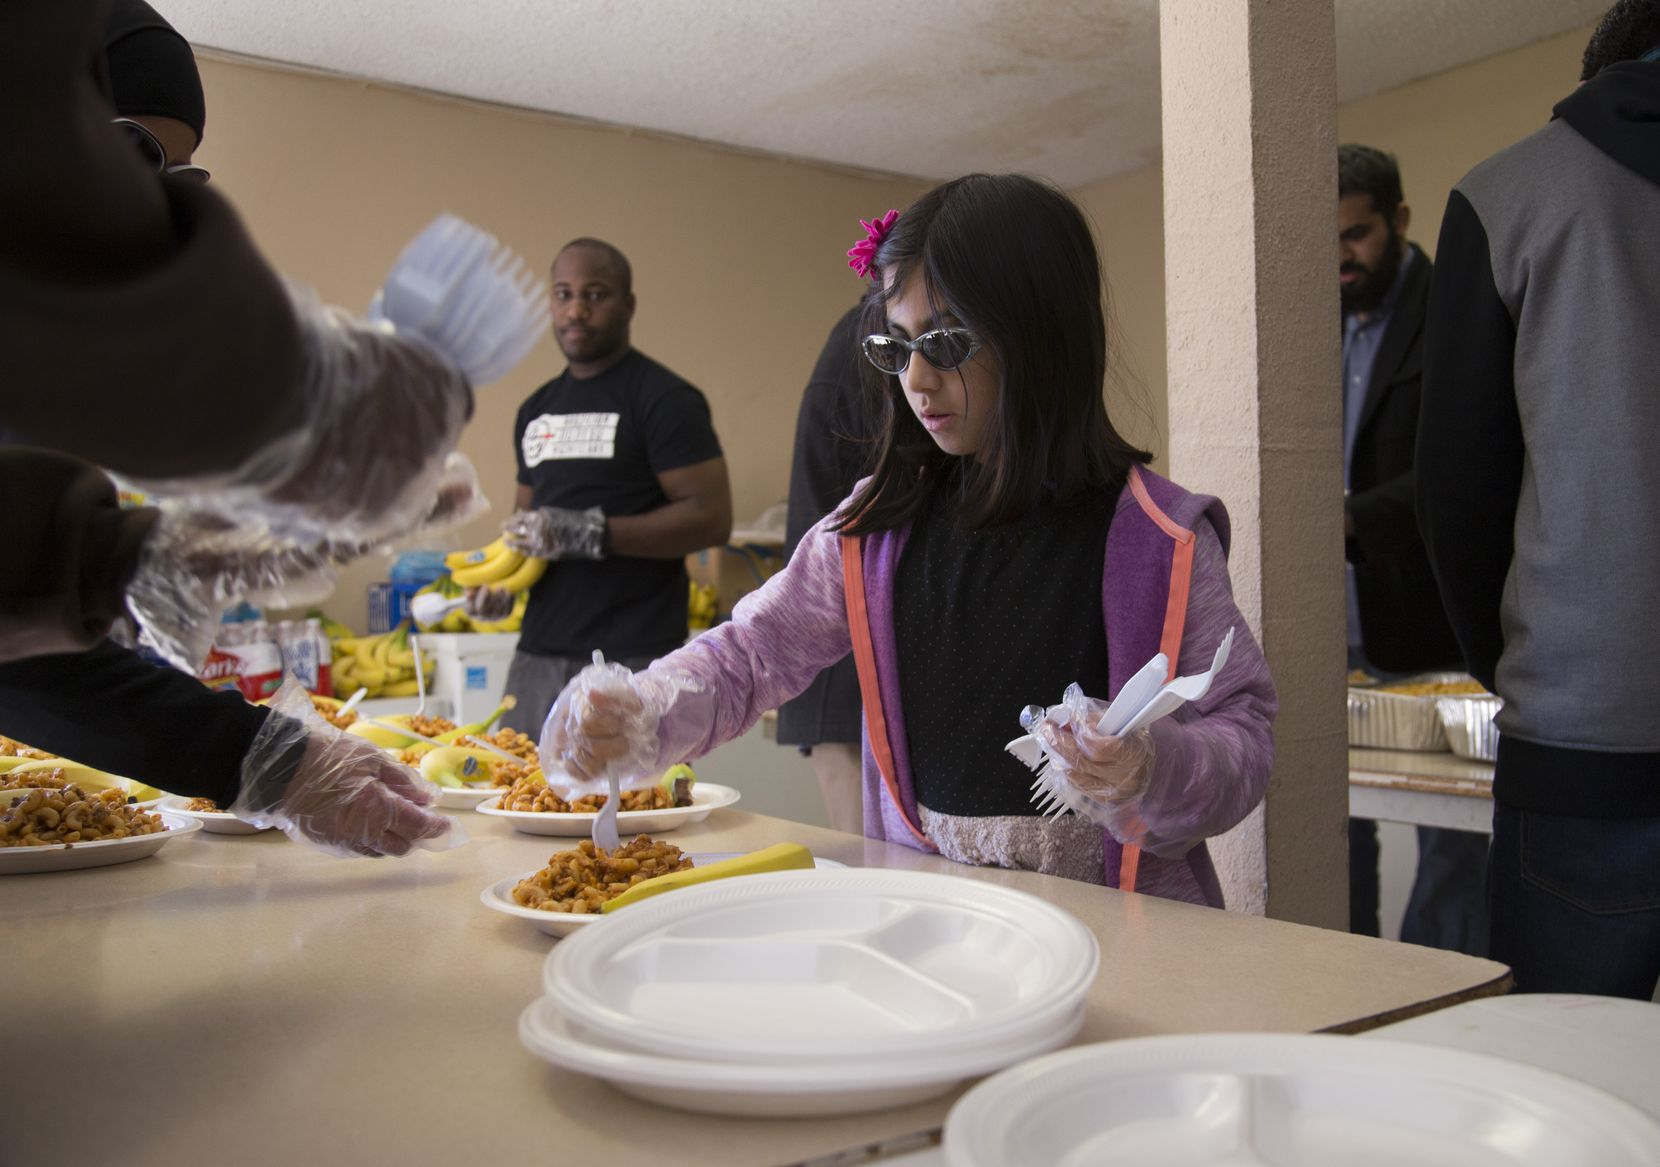 Samaah Maqsood, an 8-year-old from Richardson, helped to serve homeless people at Masjid Al-Islam in January 2015.